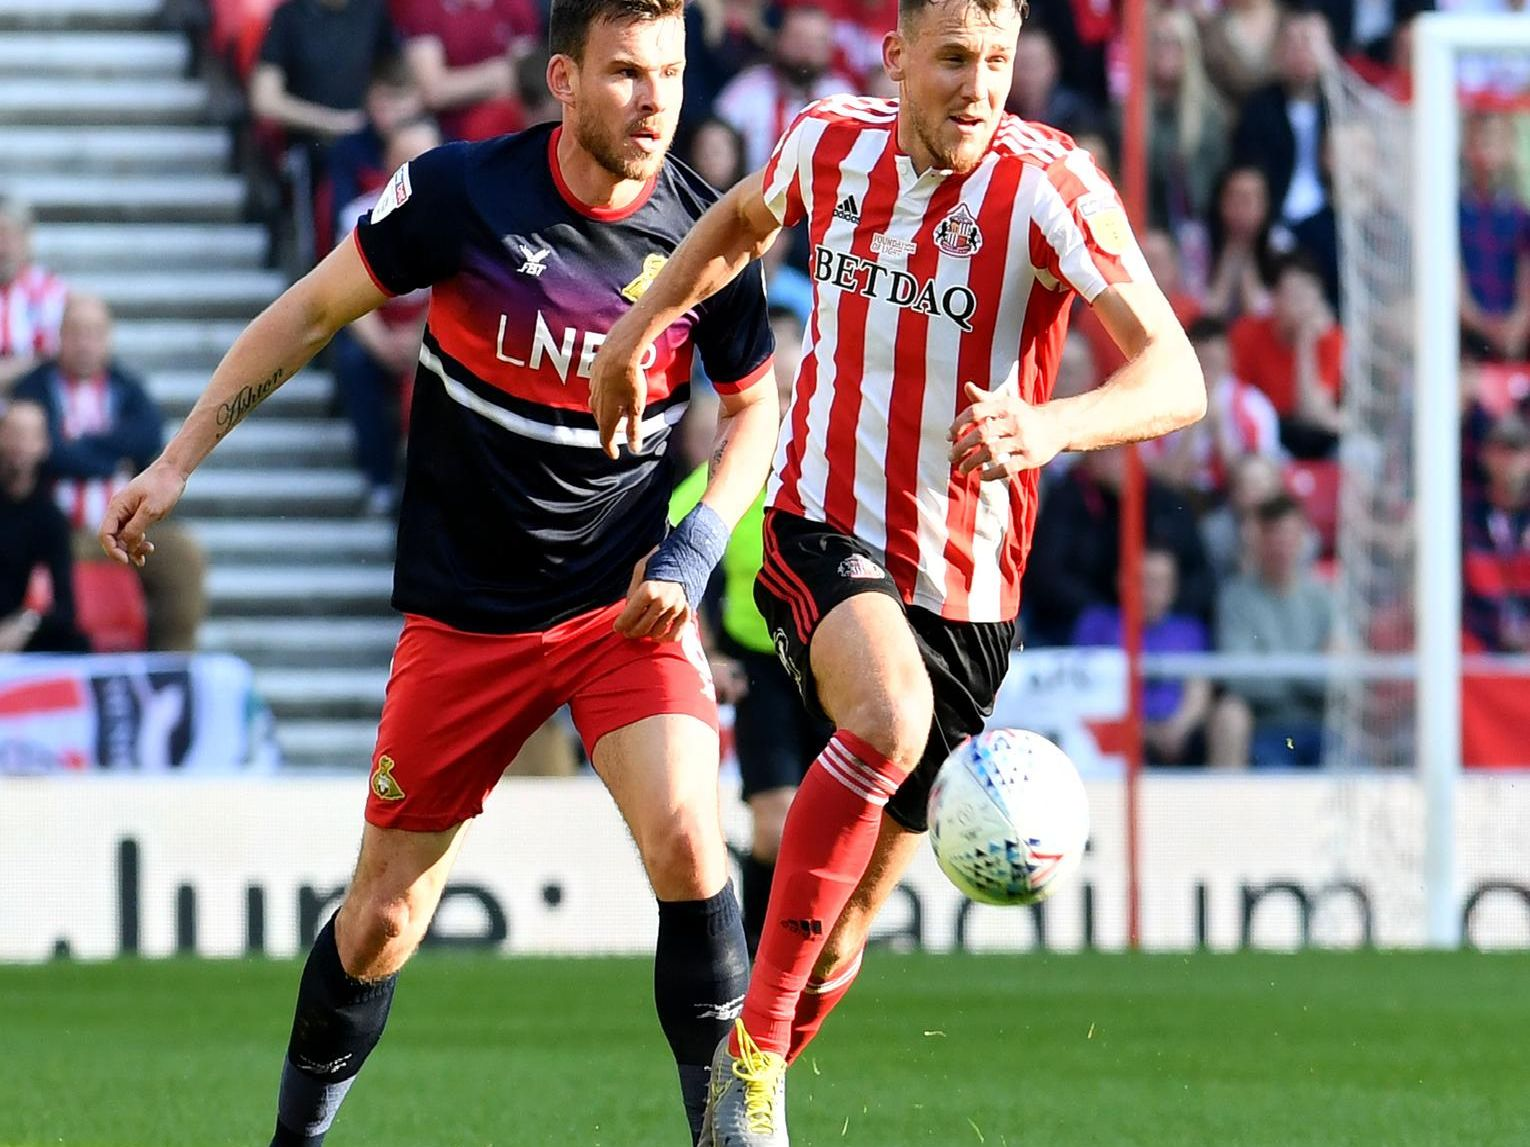 Charlie Wyke impressed against Doncaster at the Stadium of Light.